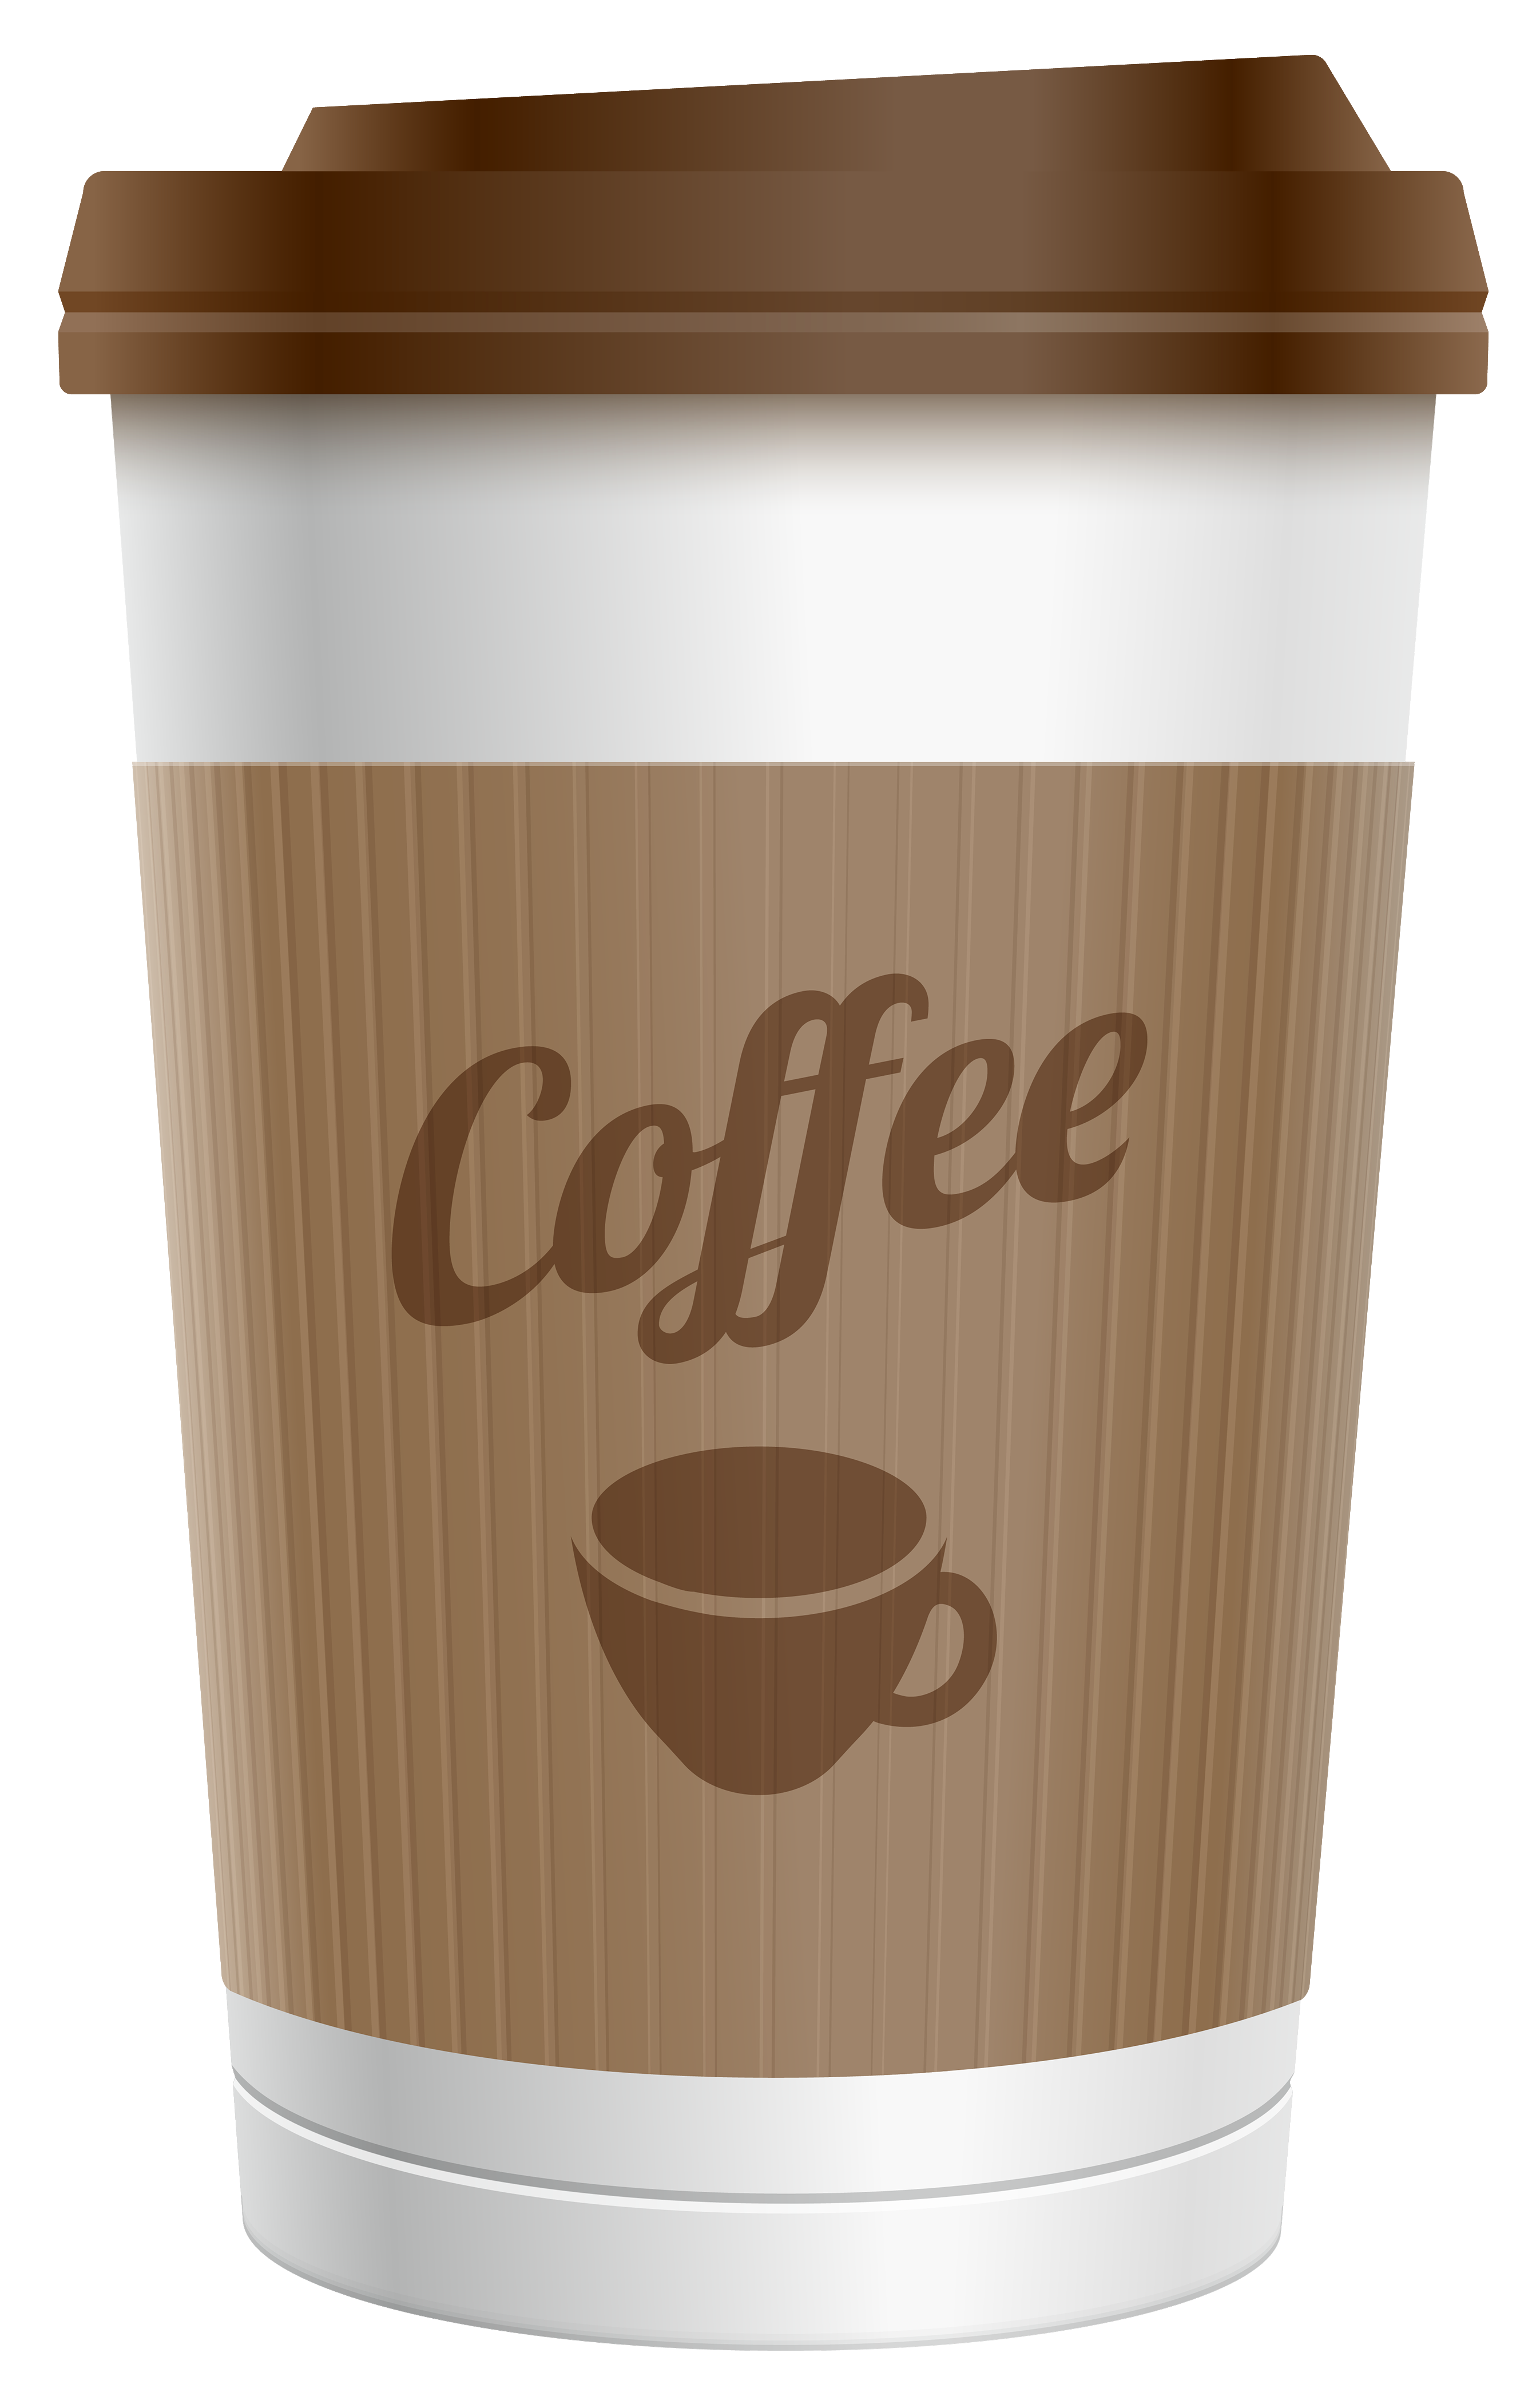 Clipart coffee clip art. Cups heart cup printables